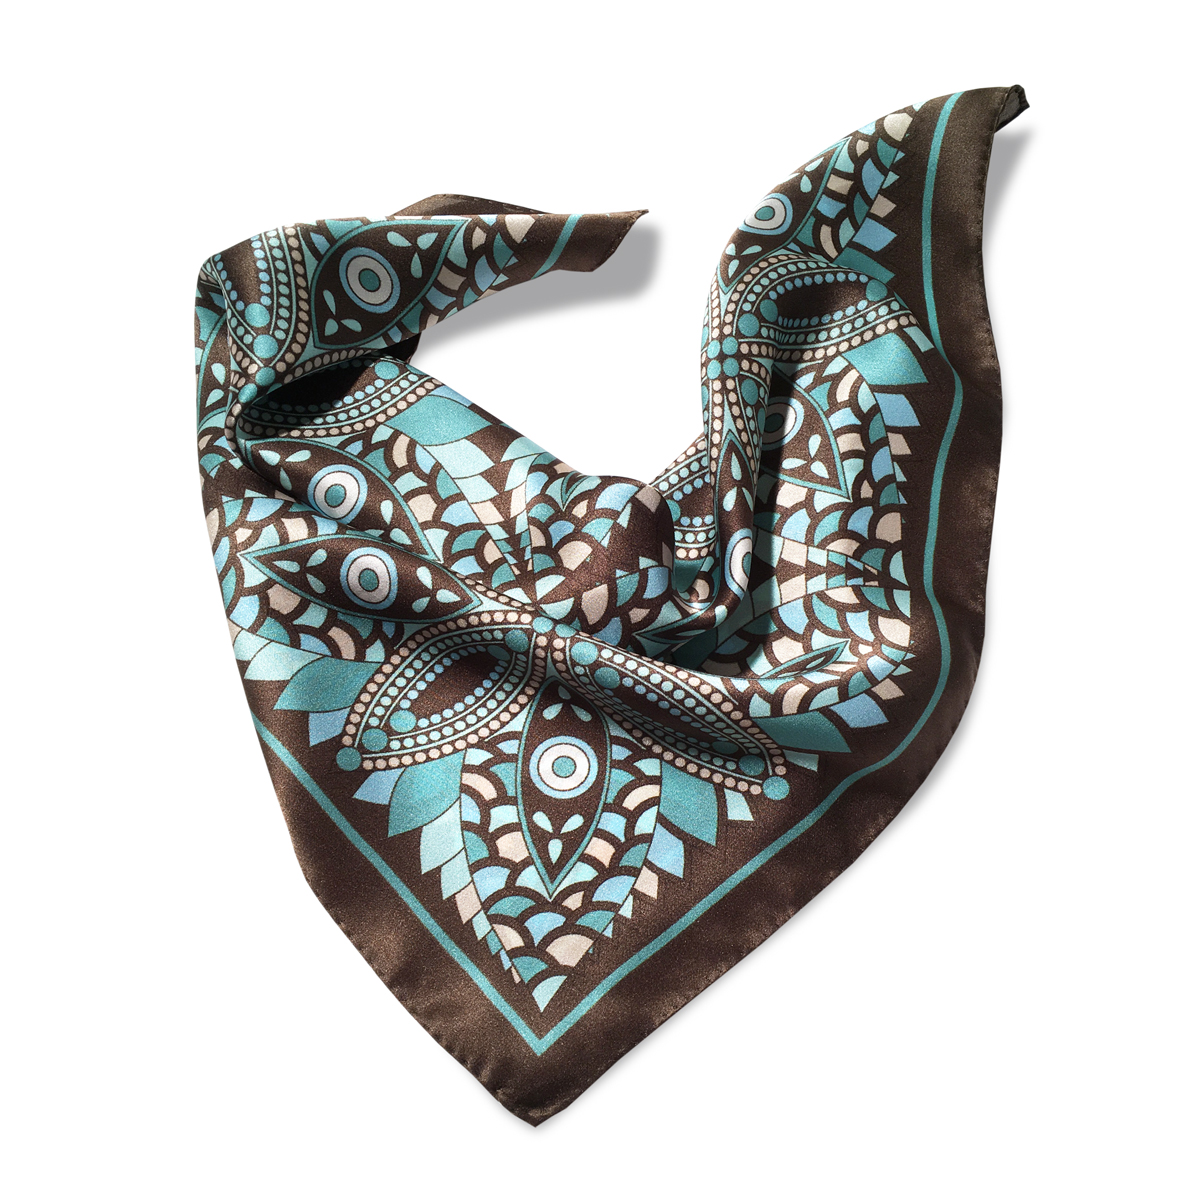 45x45cm Pocket Scarf / Bandana 100% Silk